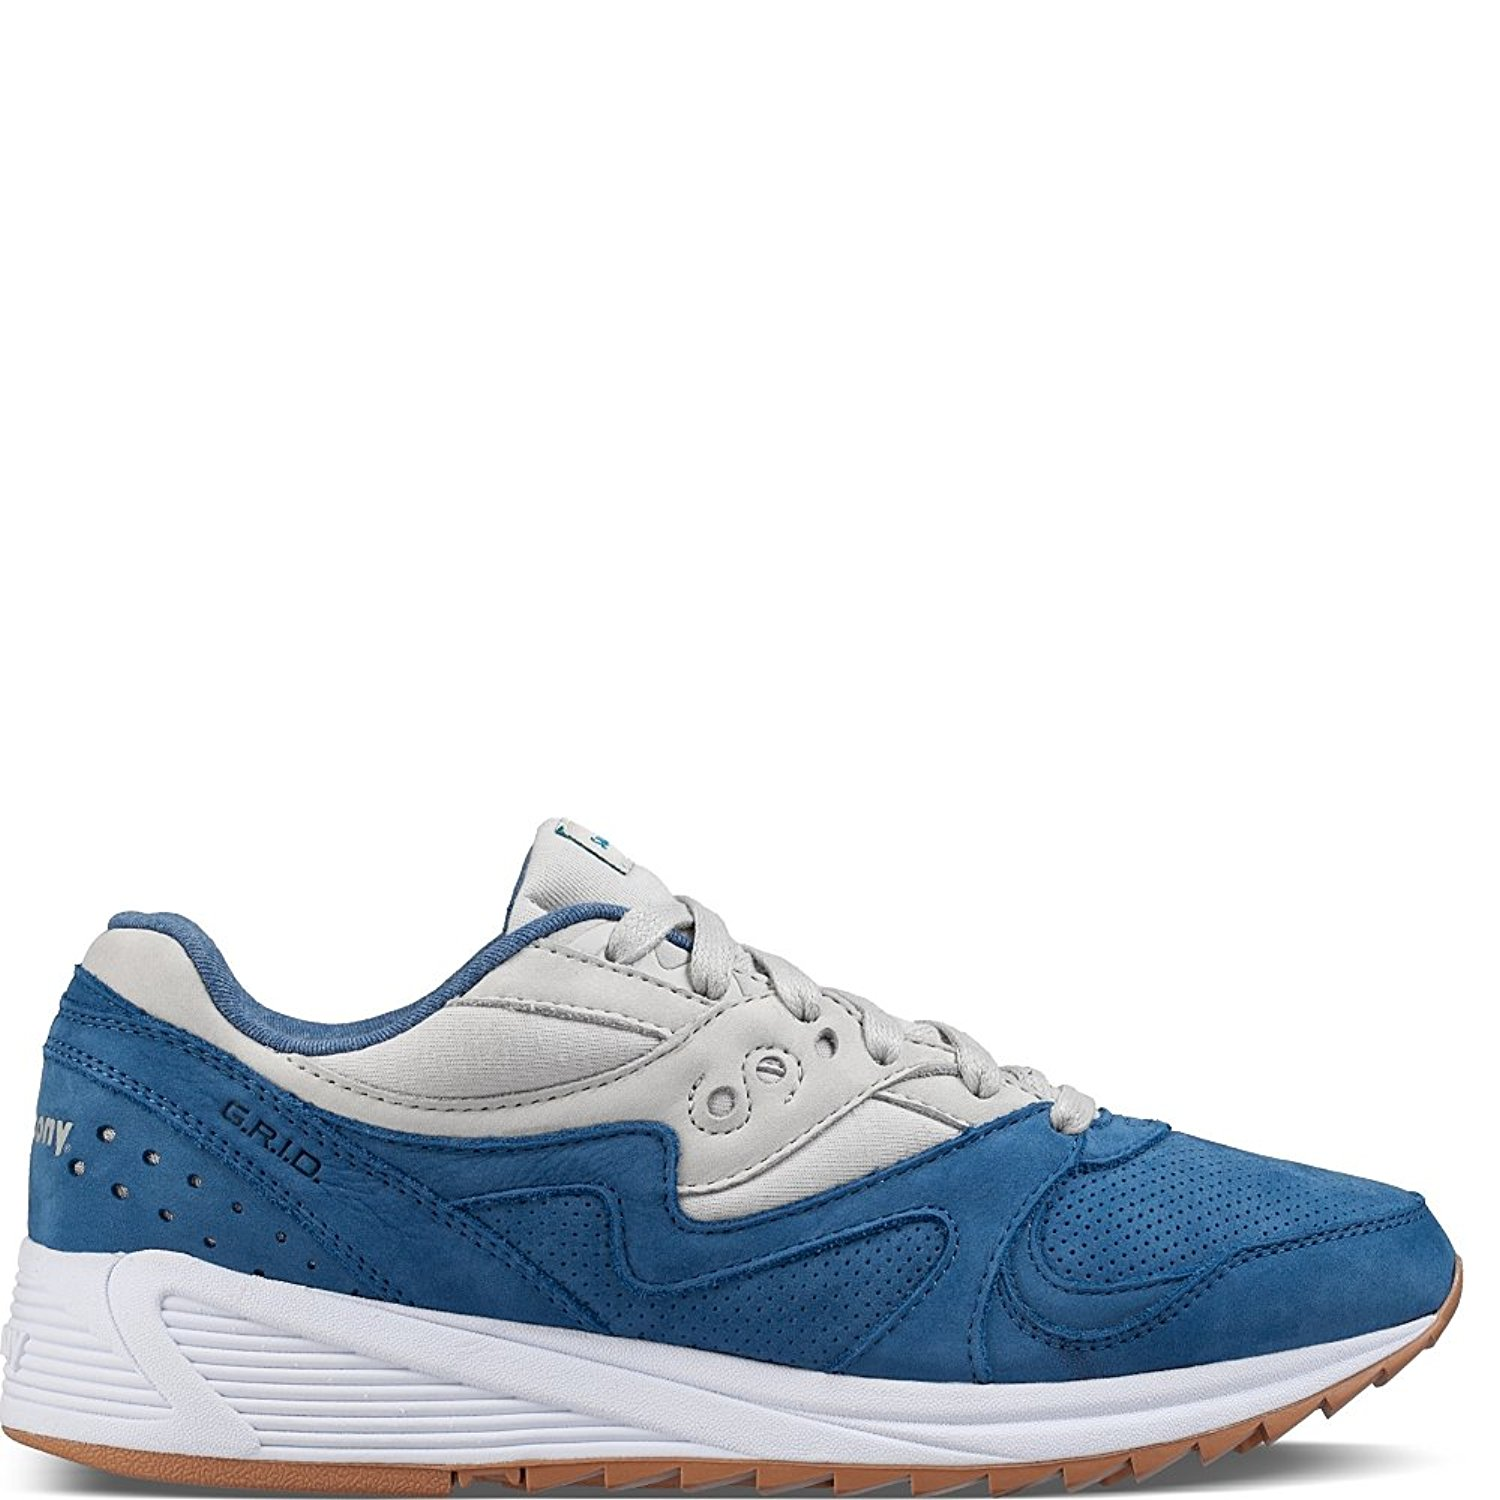 d409bc9ad433 Details about Saucony Mens Grid 8000 Low Top Lace Up Fashion Sneakers